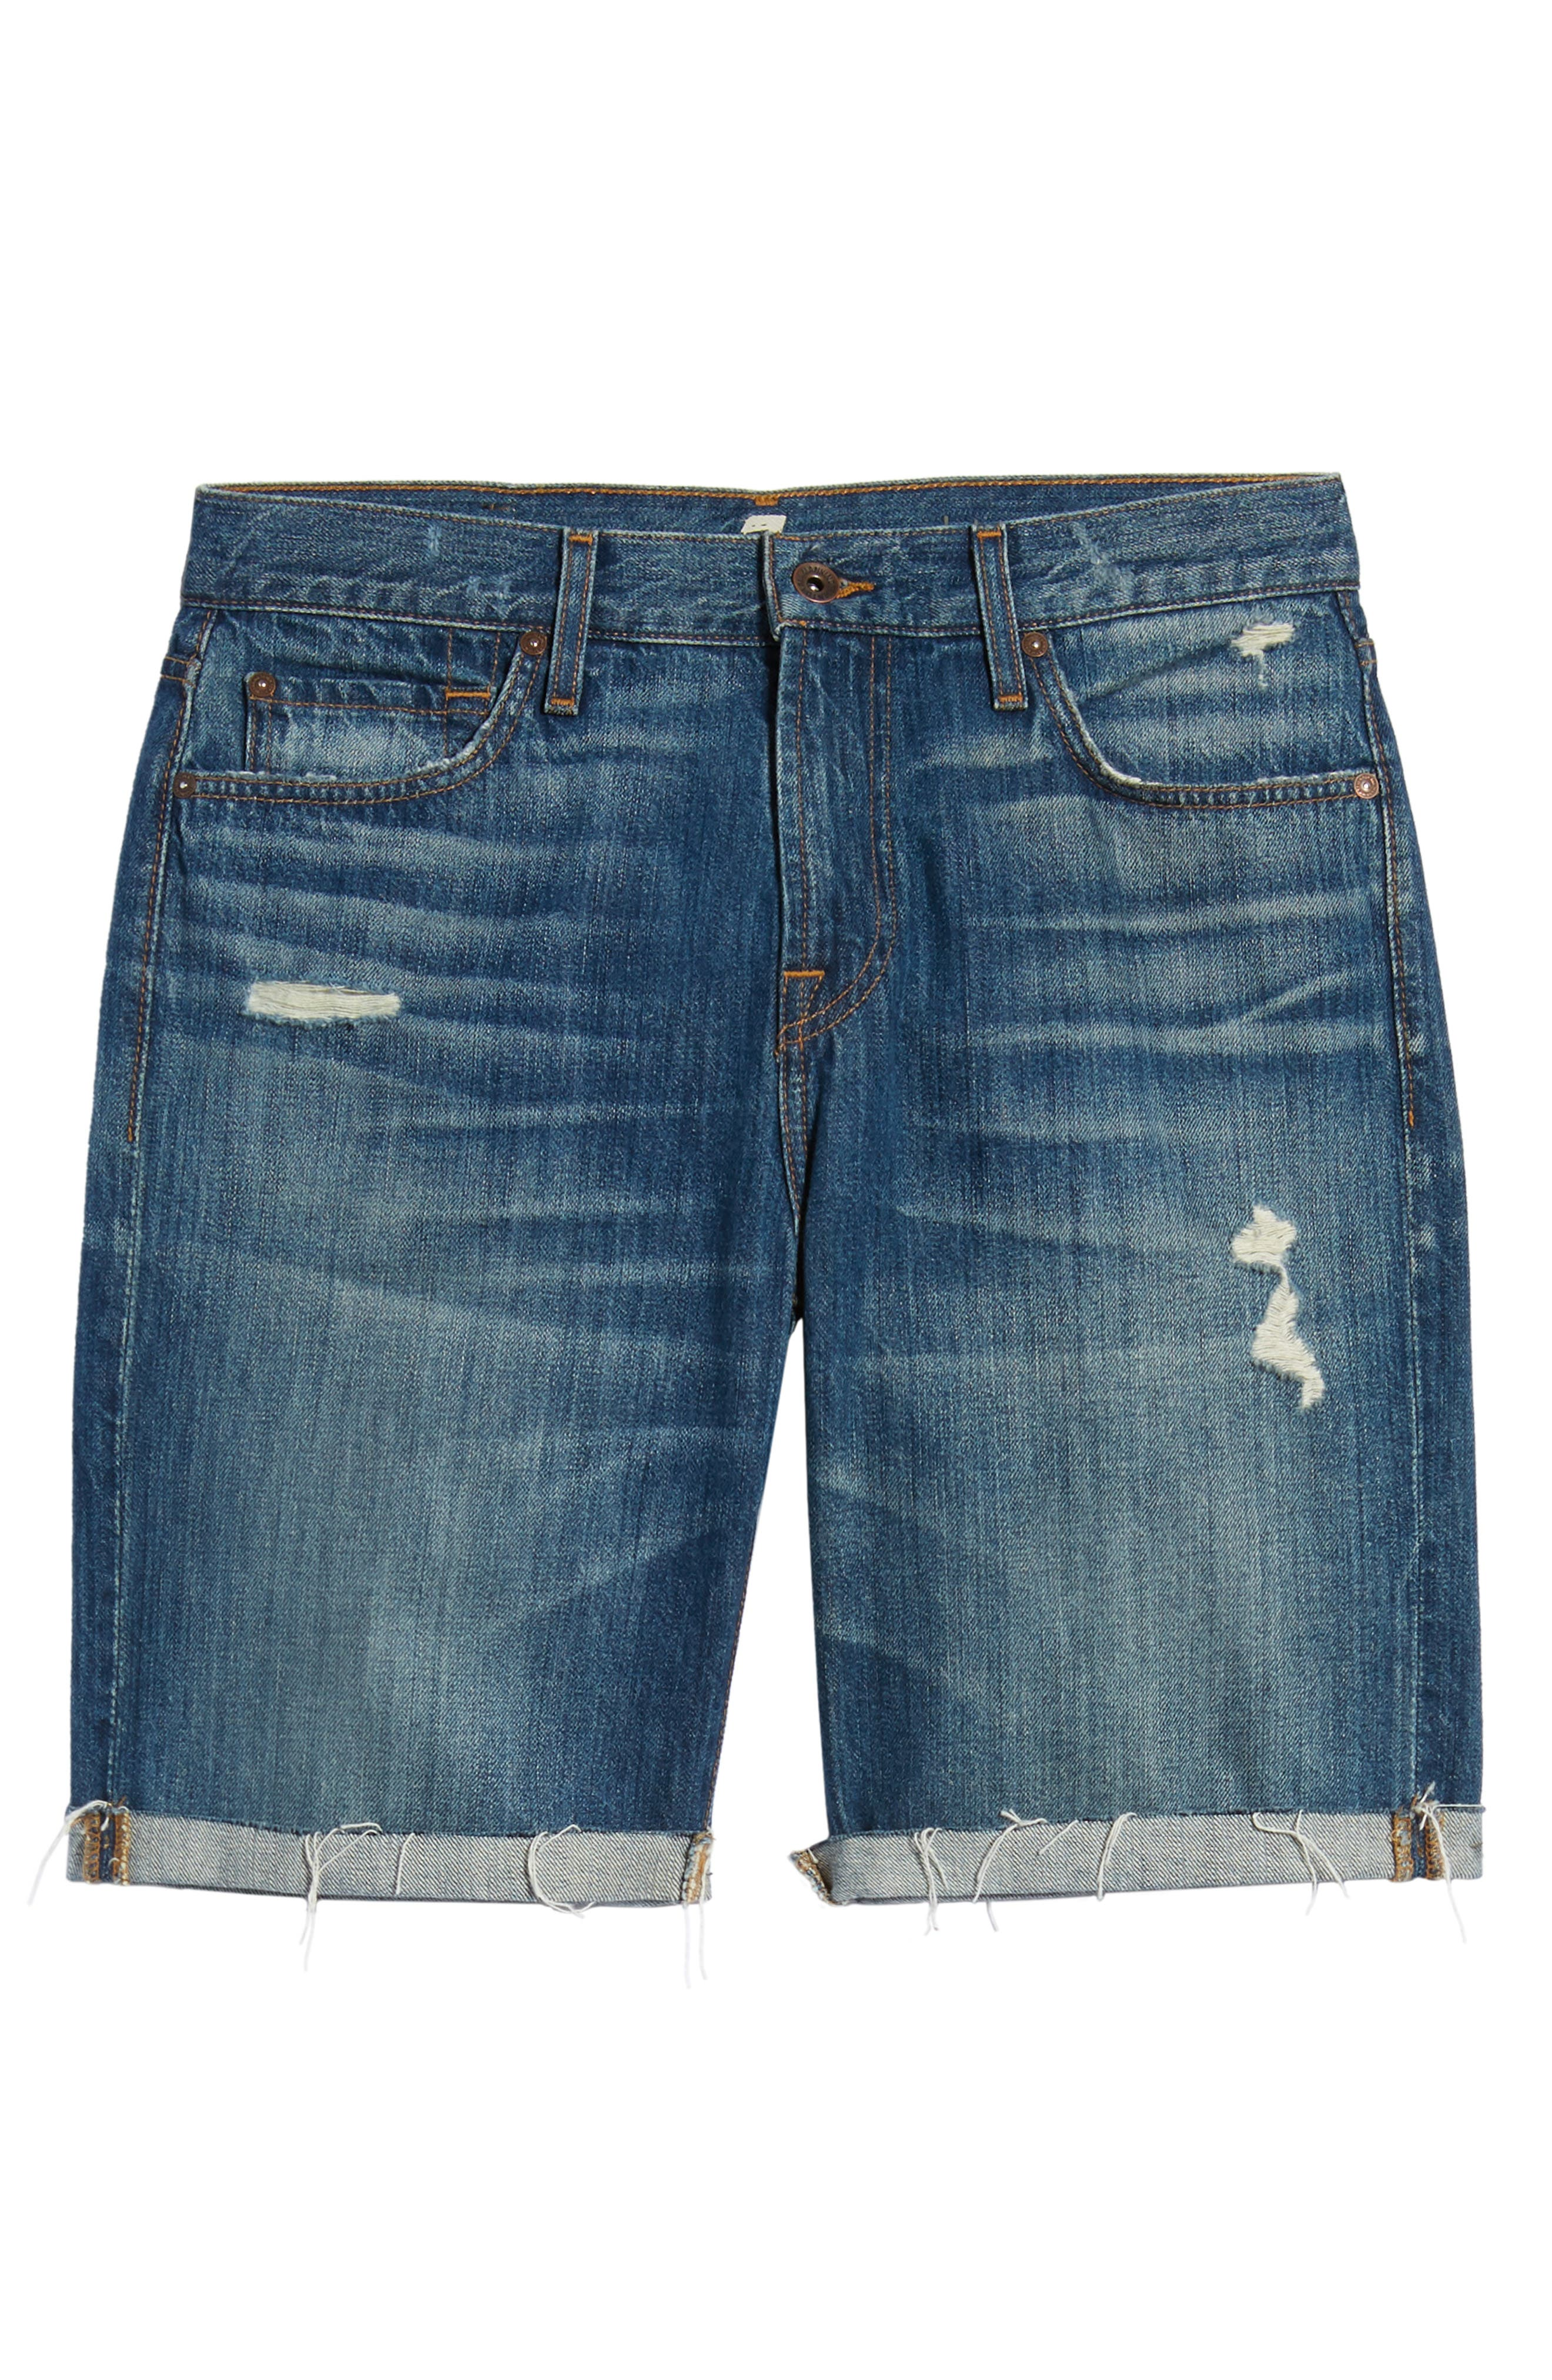 7 FOR ALL MANKIND<SUP>®</SUP>, Cutoff Denim Shorts, Alternate thumbnail 7, color, LEGEND DESTROYED